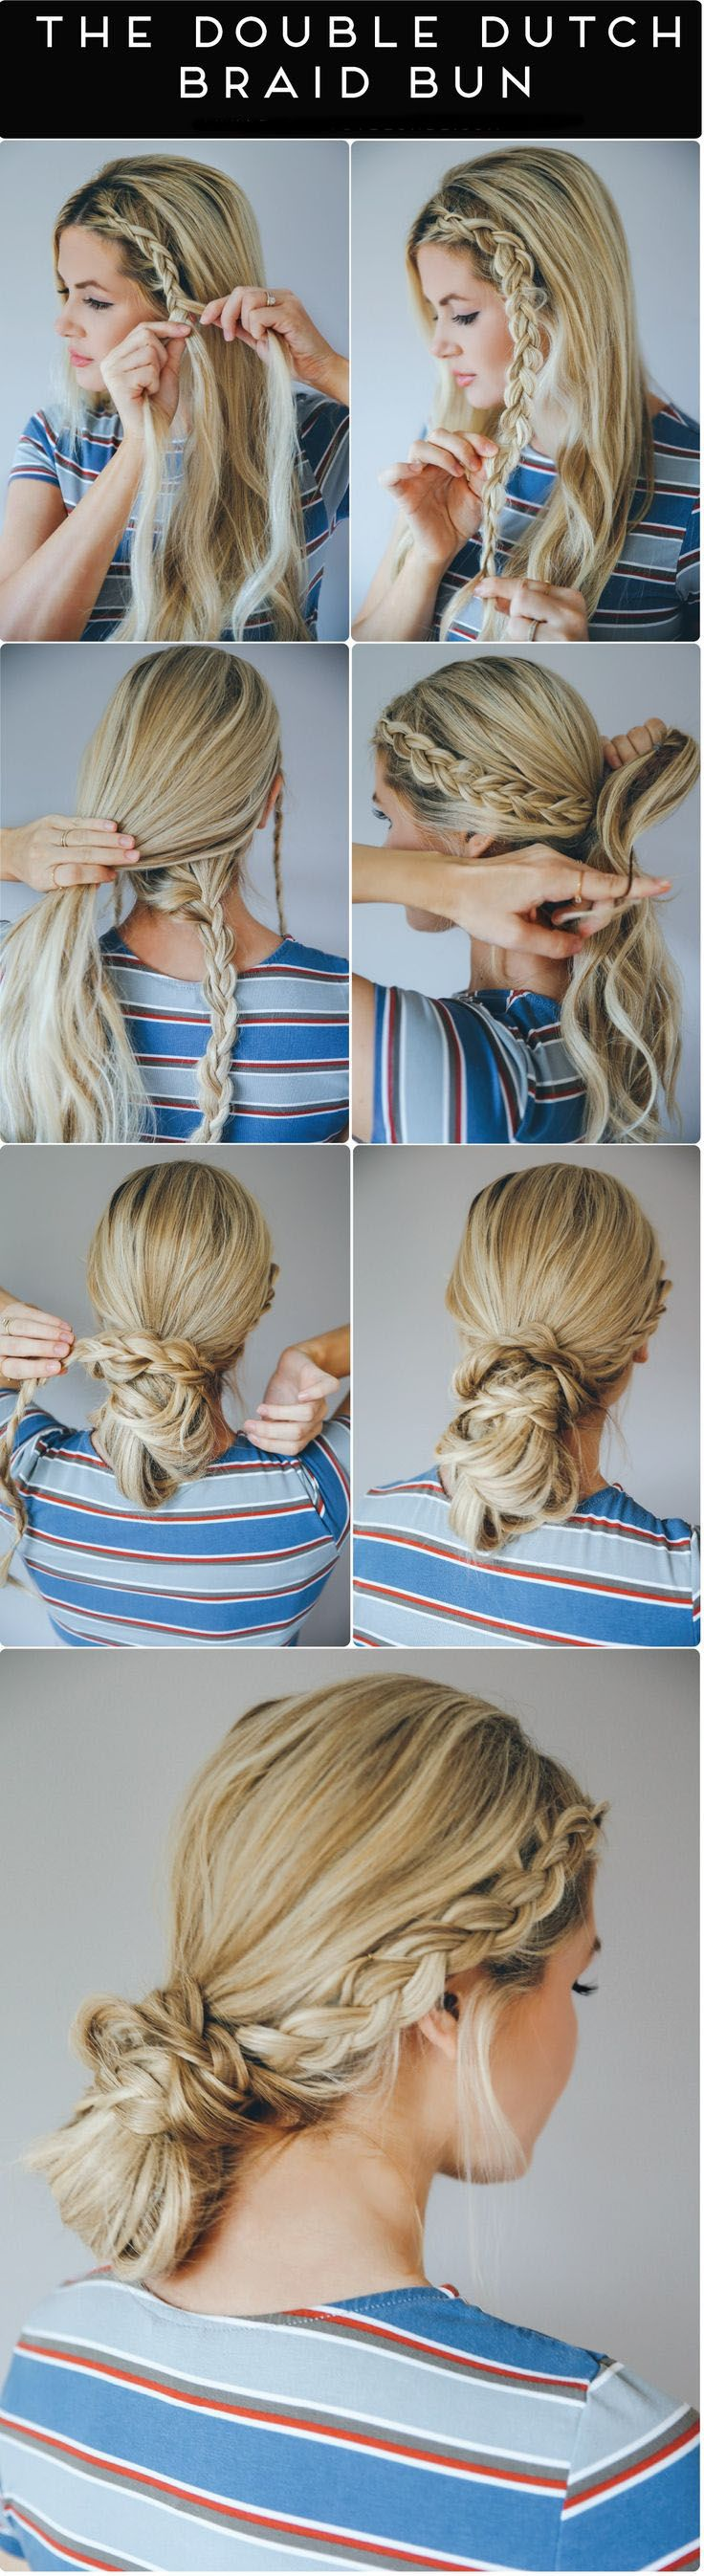 DIY: Quick & Easy 3 Hairstyles You Can Do In Less Than 10 Minutes! Whether you have a party, an appointment, a meeting there's no reason to look beautiful, classy and stylish every day. Today, I will share my always comfortable, flattering and most versatile Top 3 hairstyles!